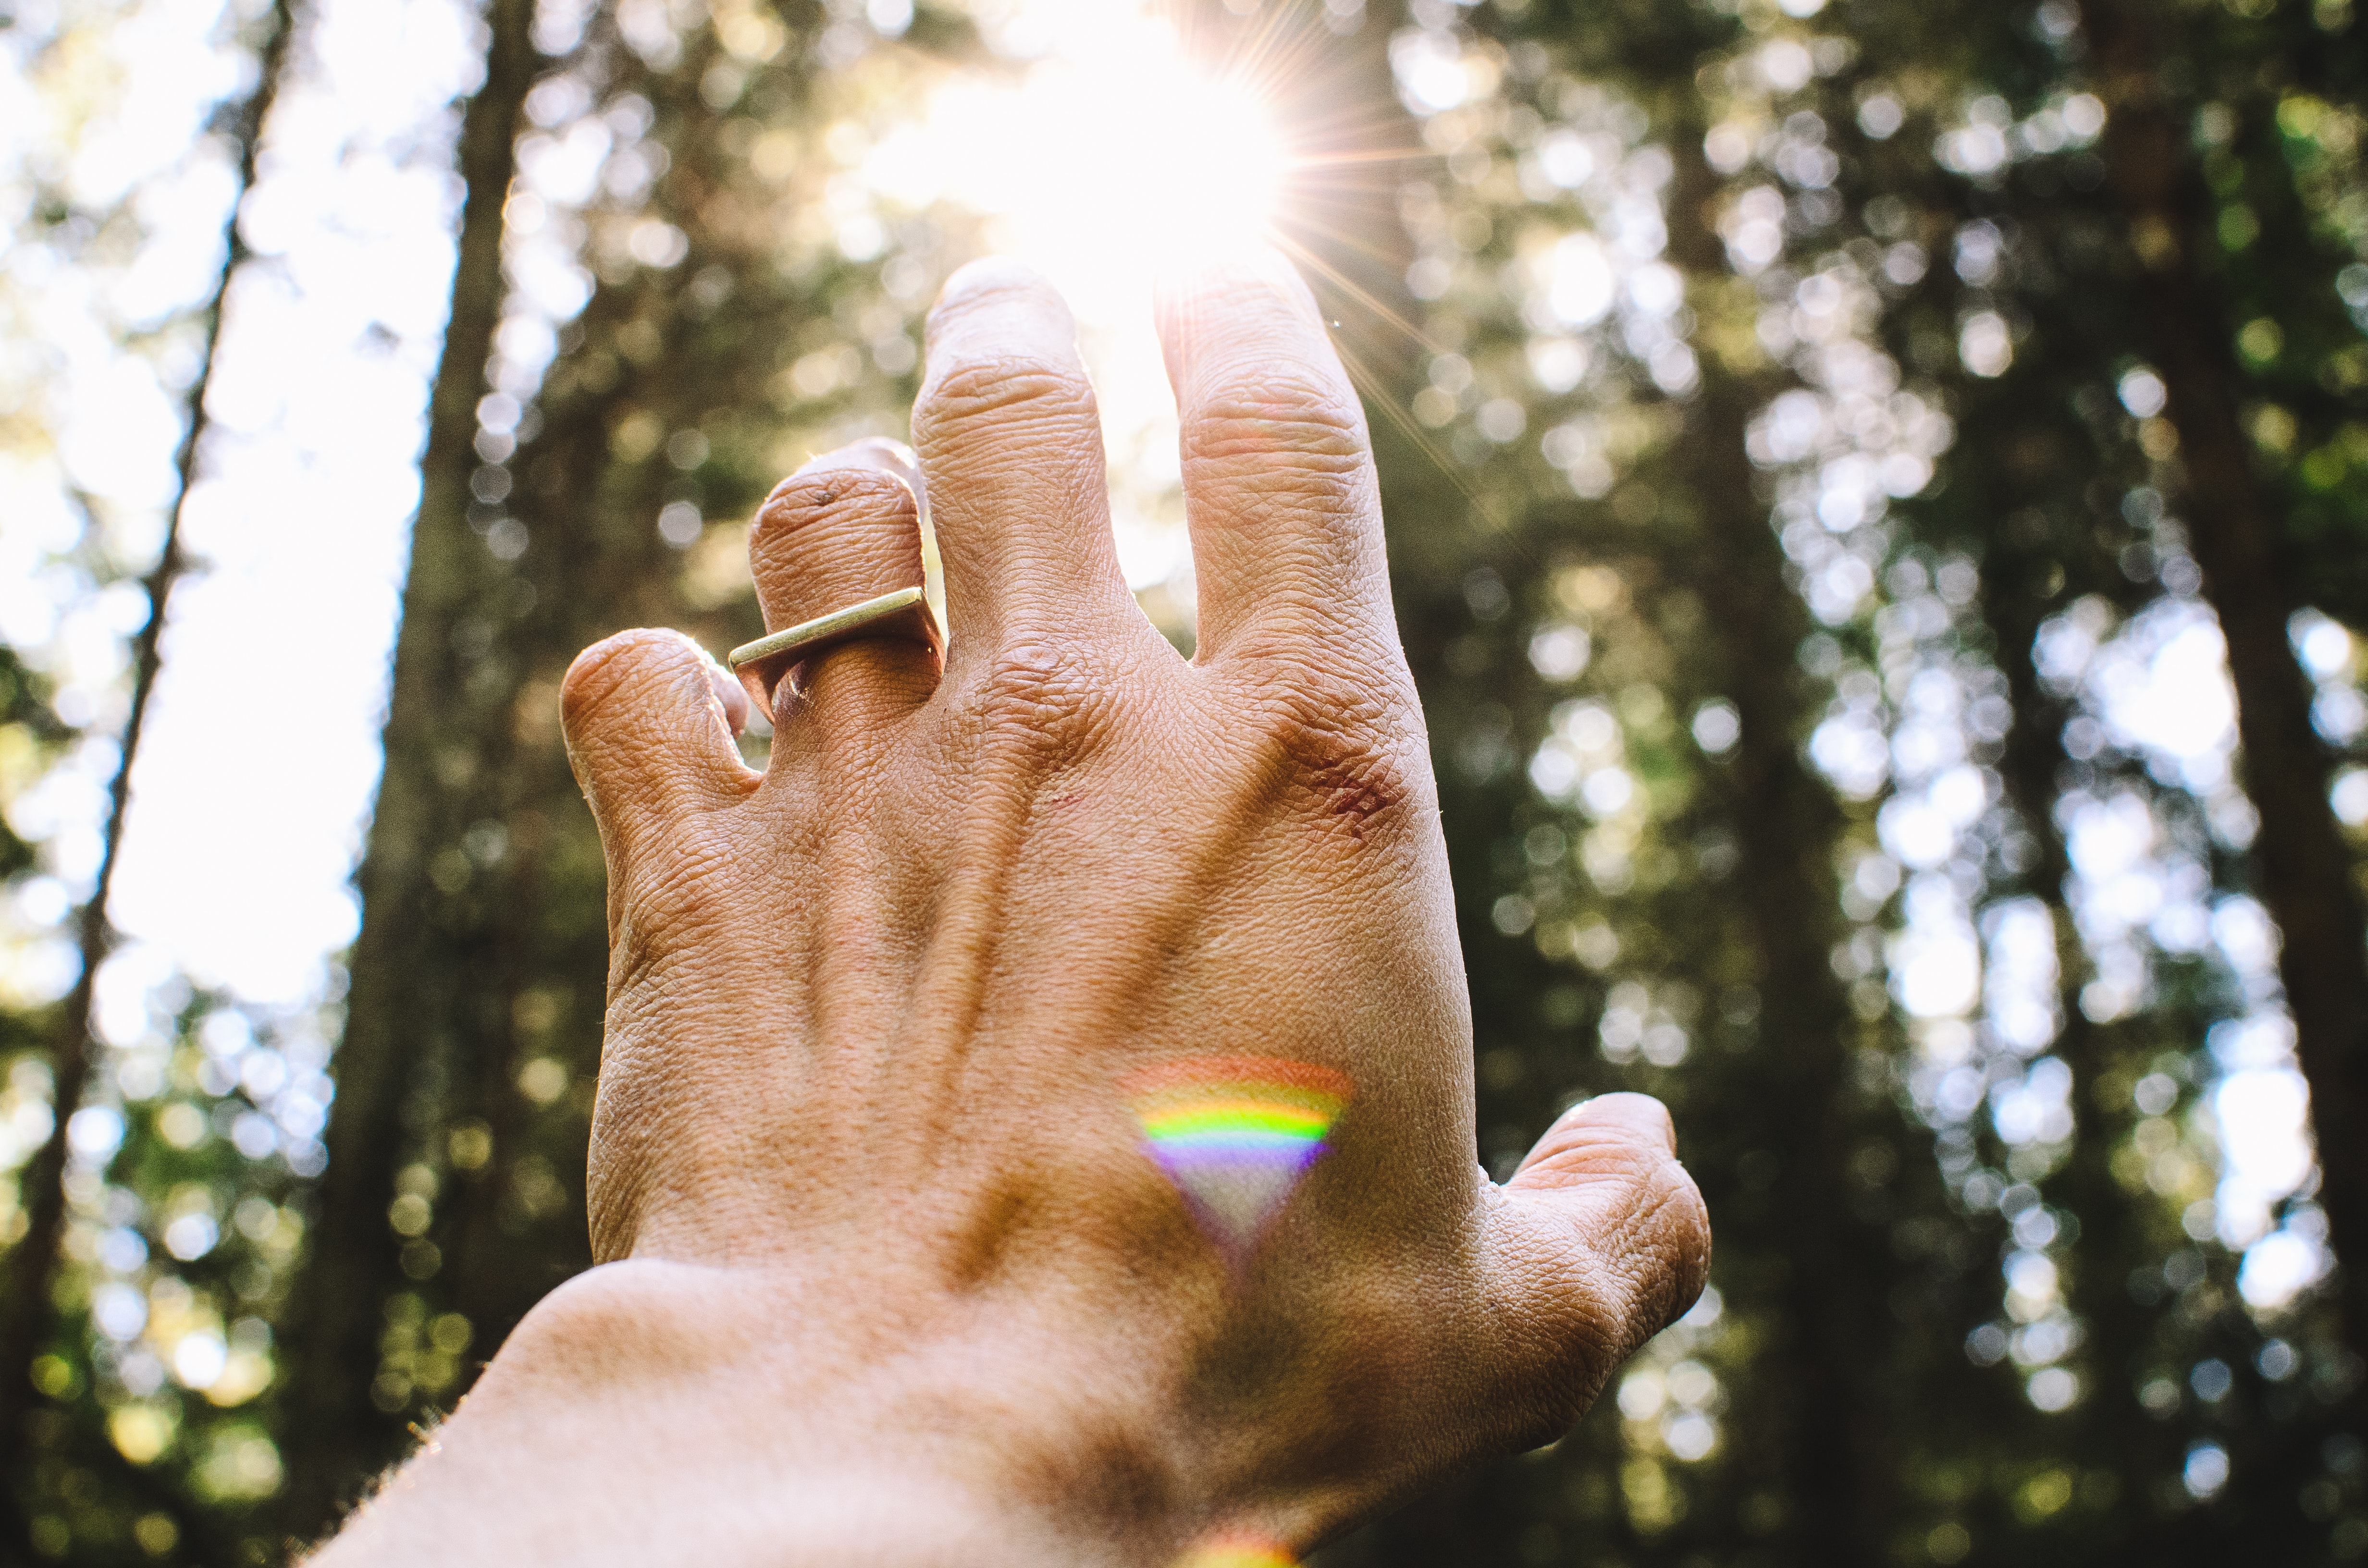 An outstretched hand reaching for dappled sunlight between tall trees